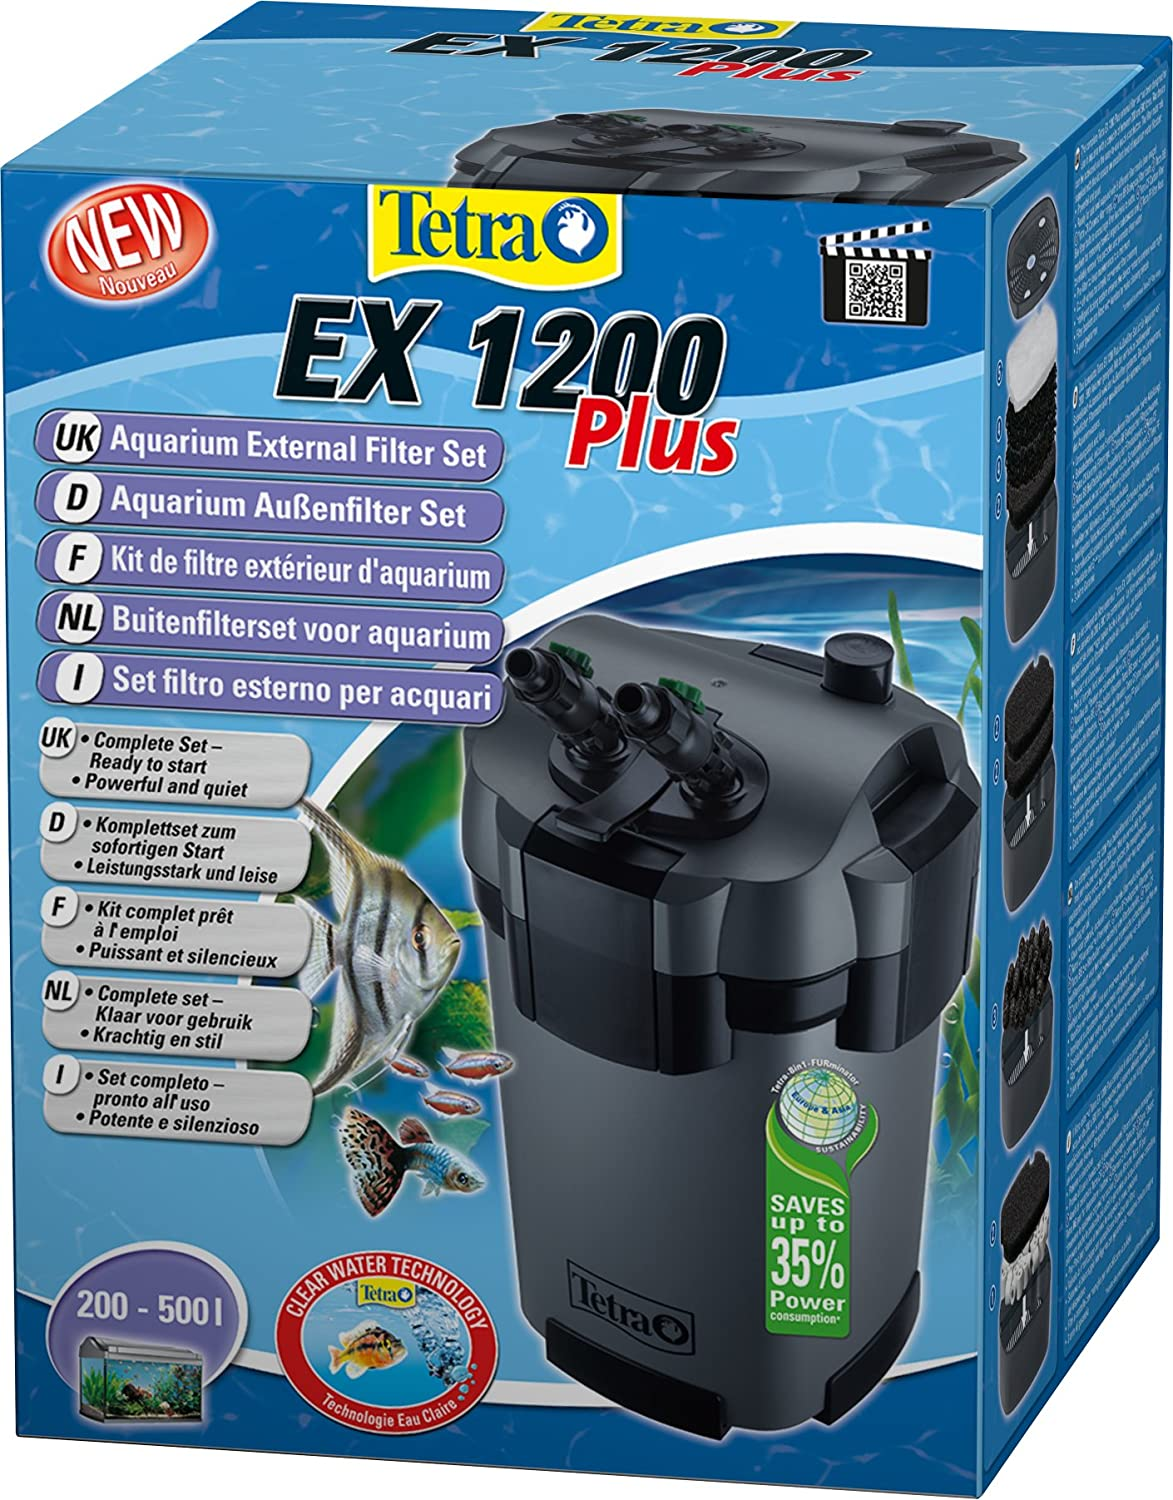 81 hGpfR69L._SL1500_ tetra tec ex 700 external filter amazon co uk pet supplies  at cita.asia